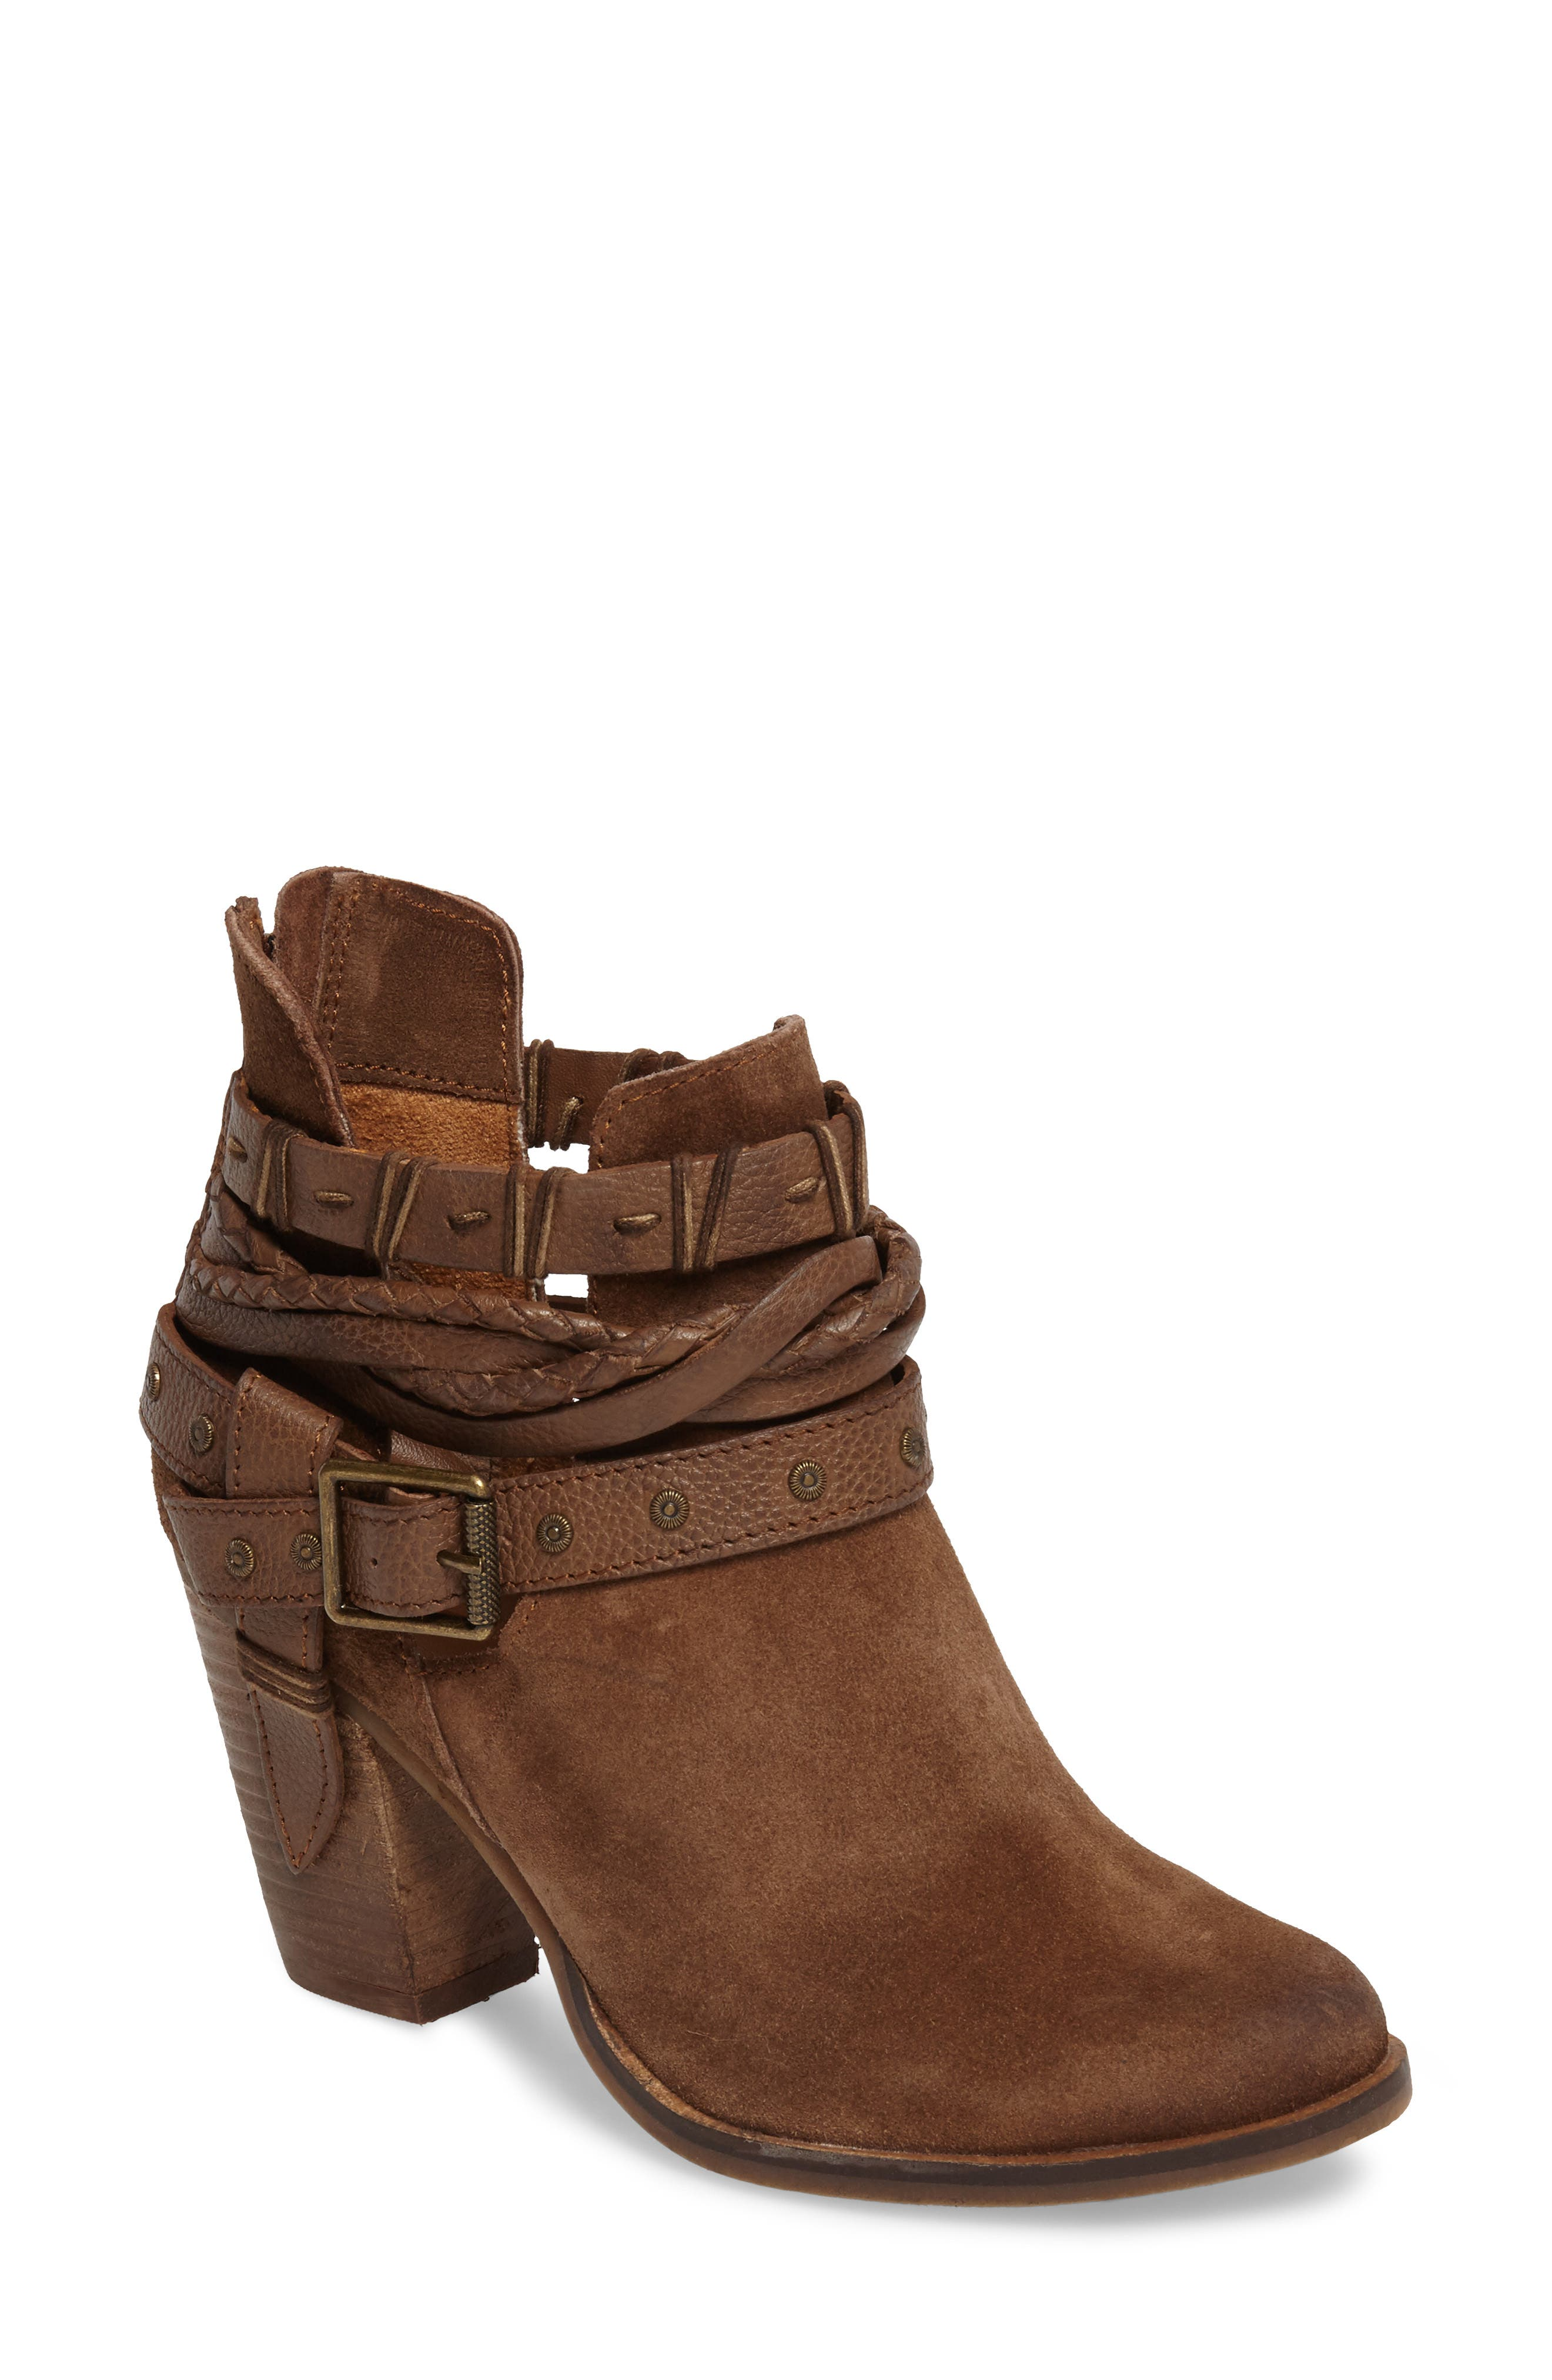 Cuthbert Strappy Bootie,                         Main,                         color, Tan Suede